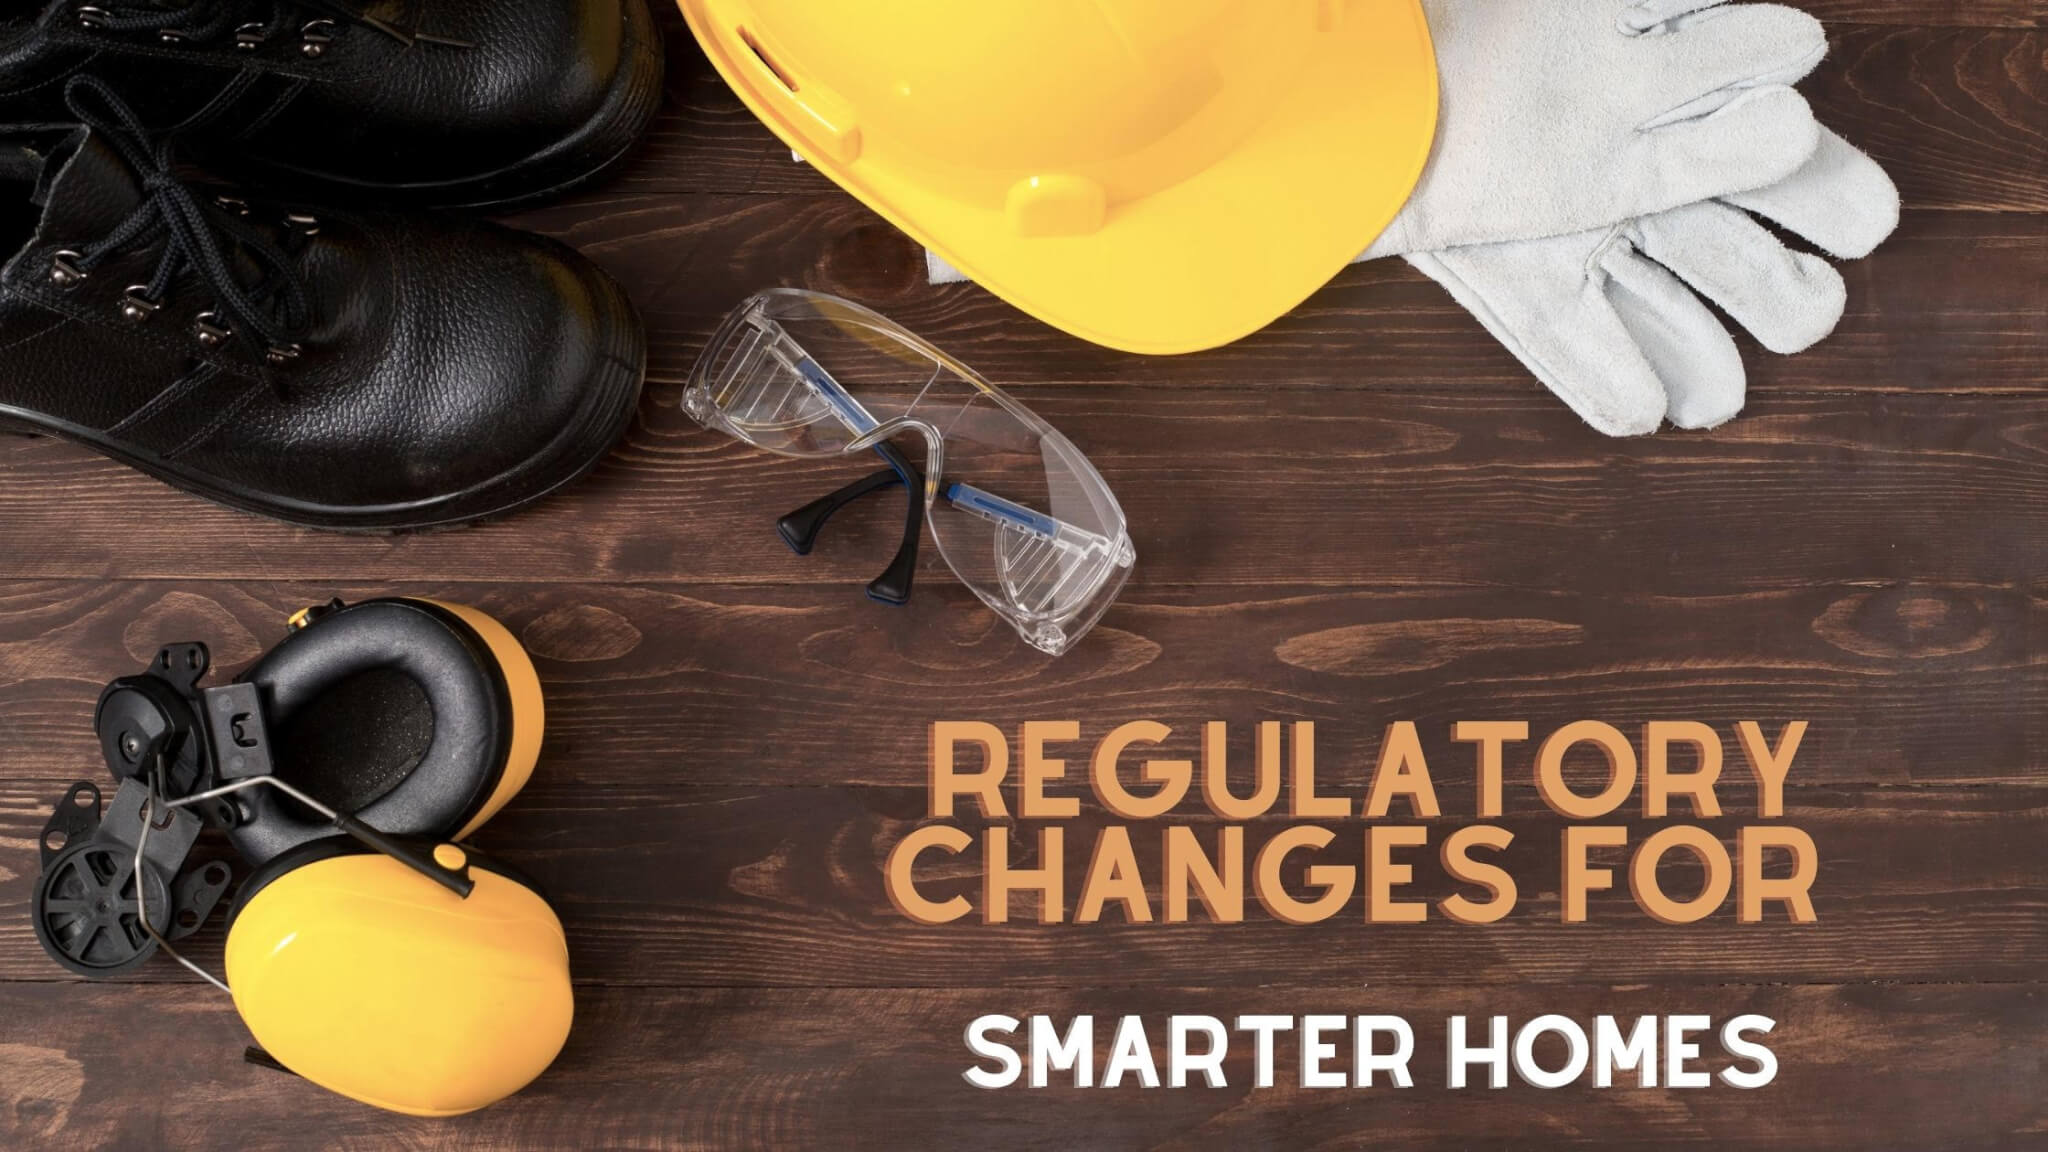 South Australian Regulations for New Solar Power Systems